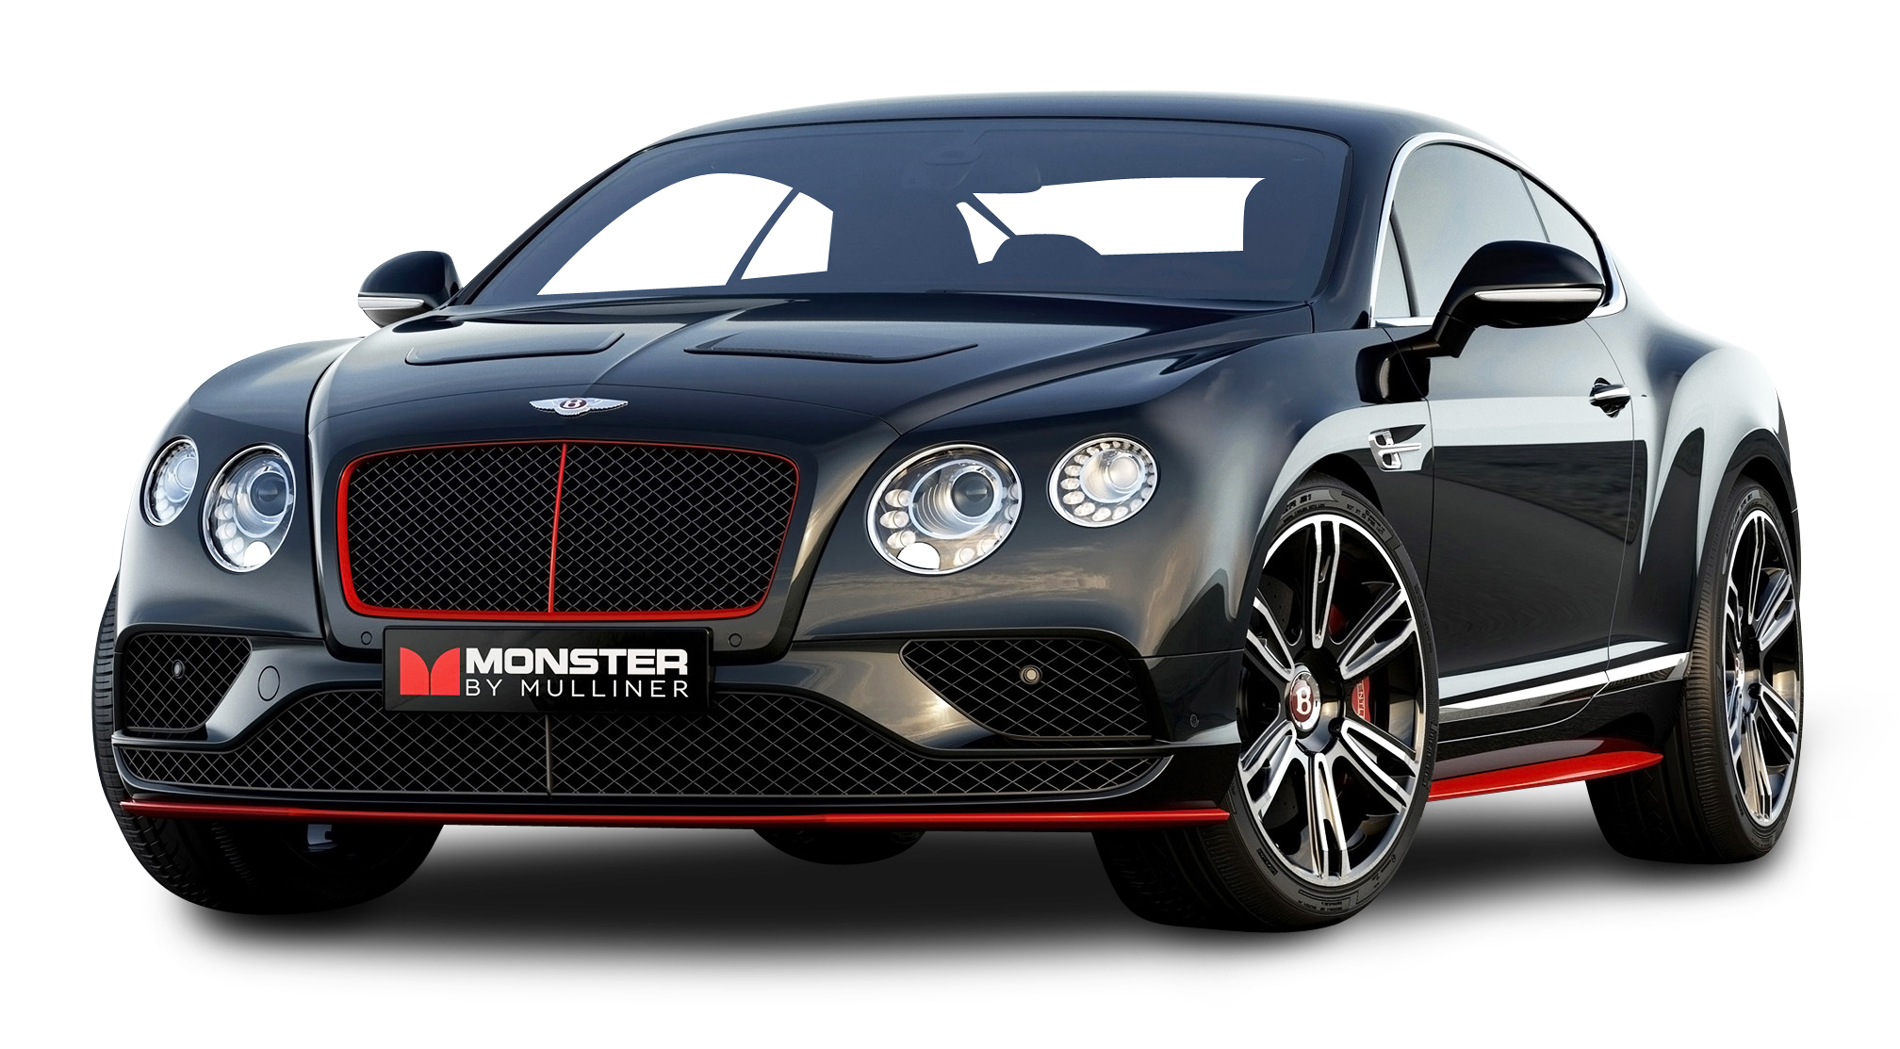 Black Bentley Continental GT V8 Car PNG Image - Bentley PNG